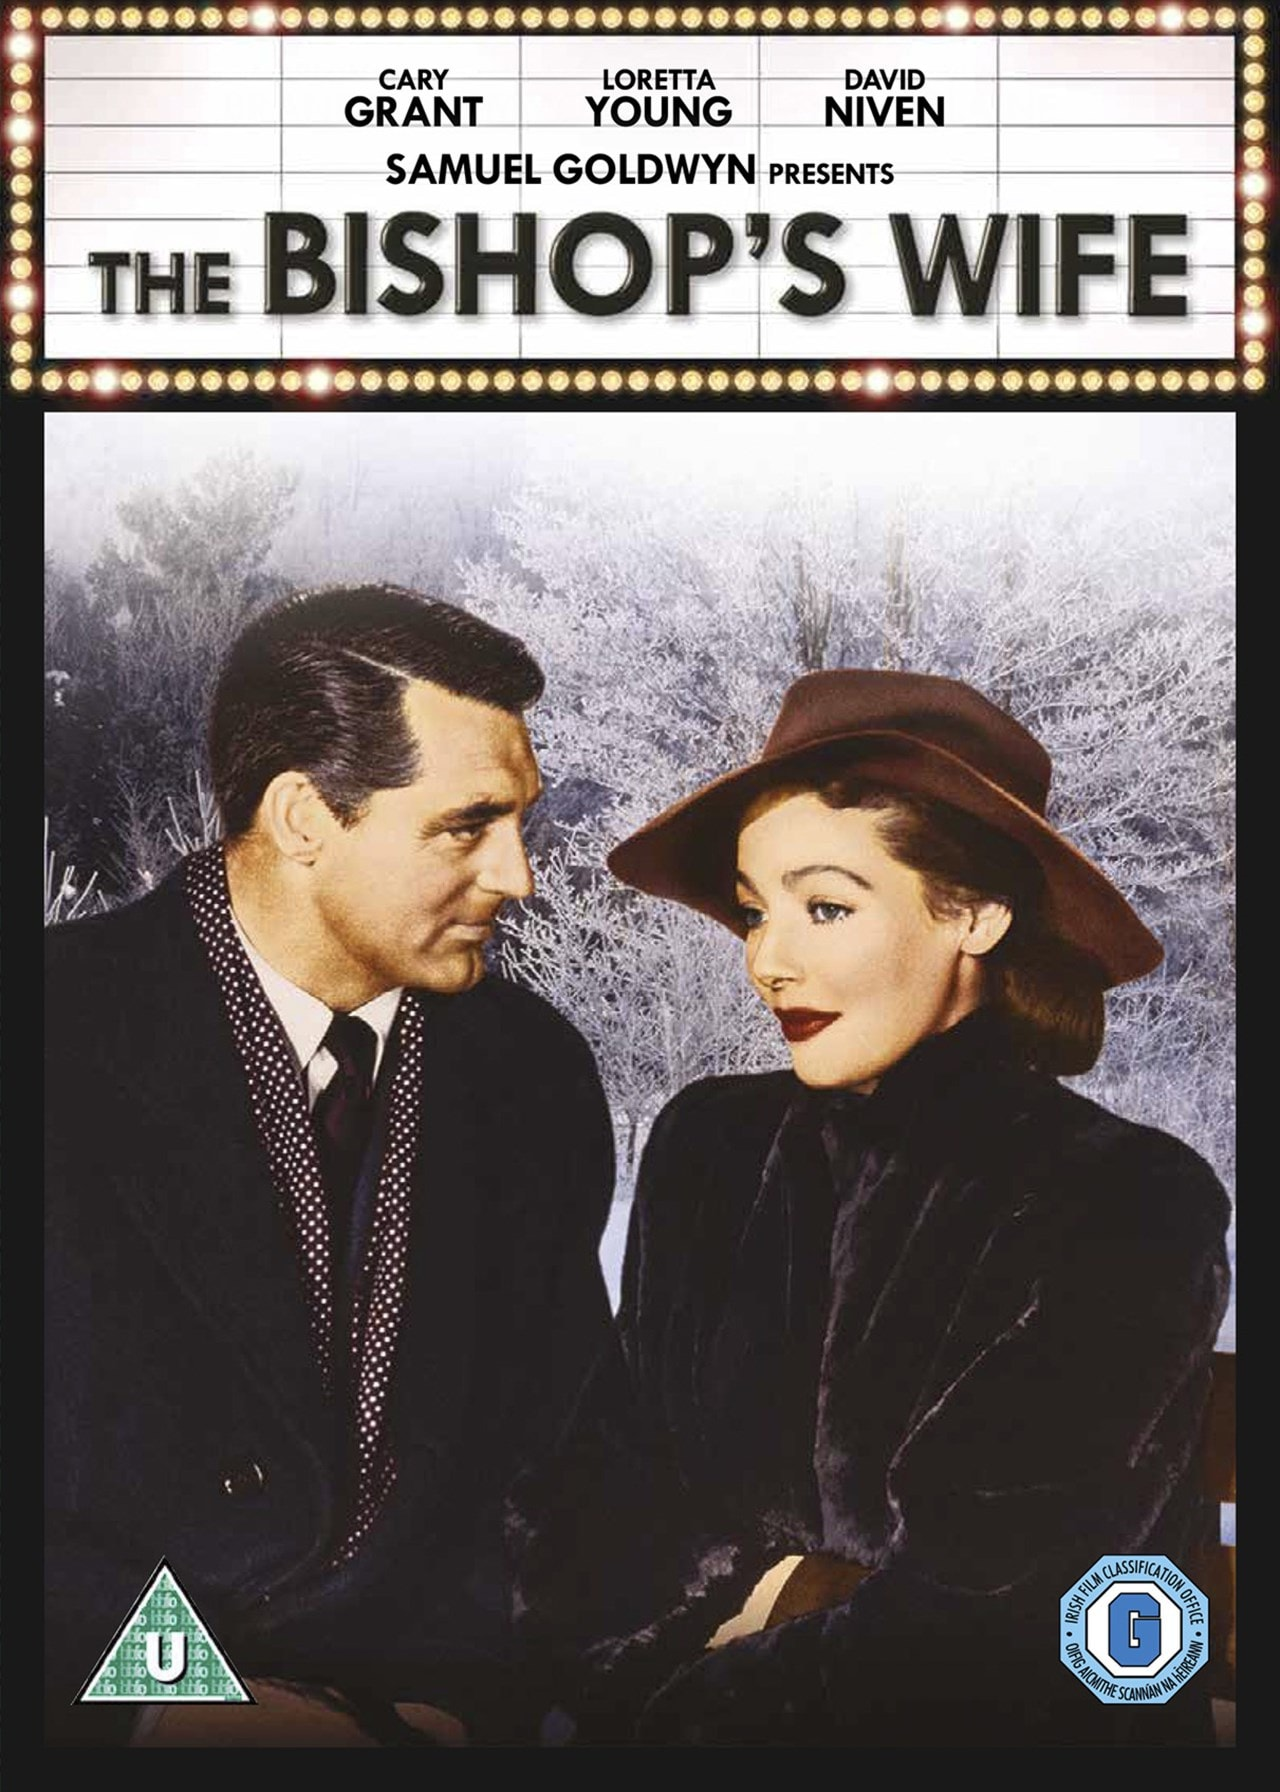 The Bishop's Wife - Samuel Goldwyn Presents - 3